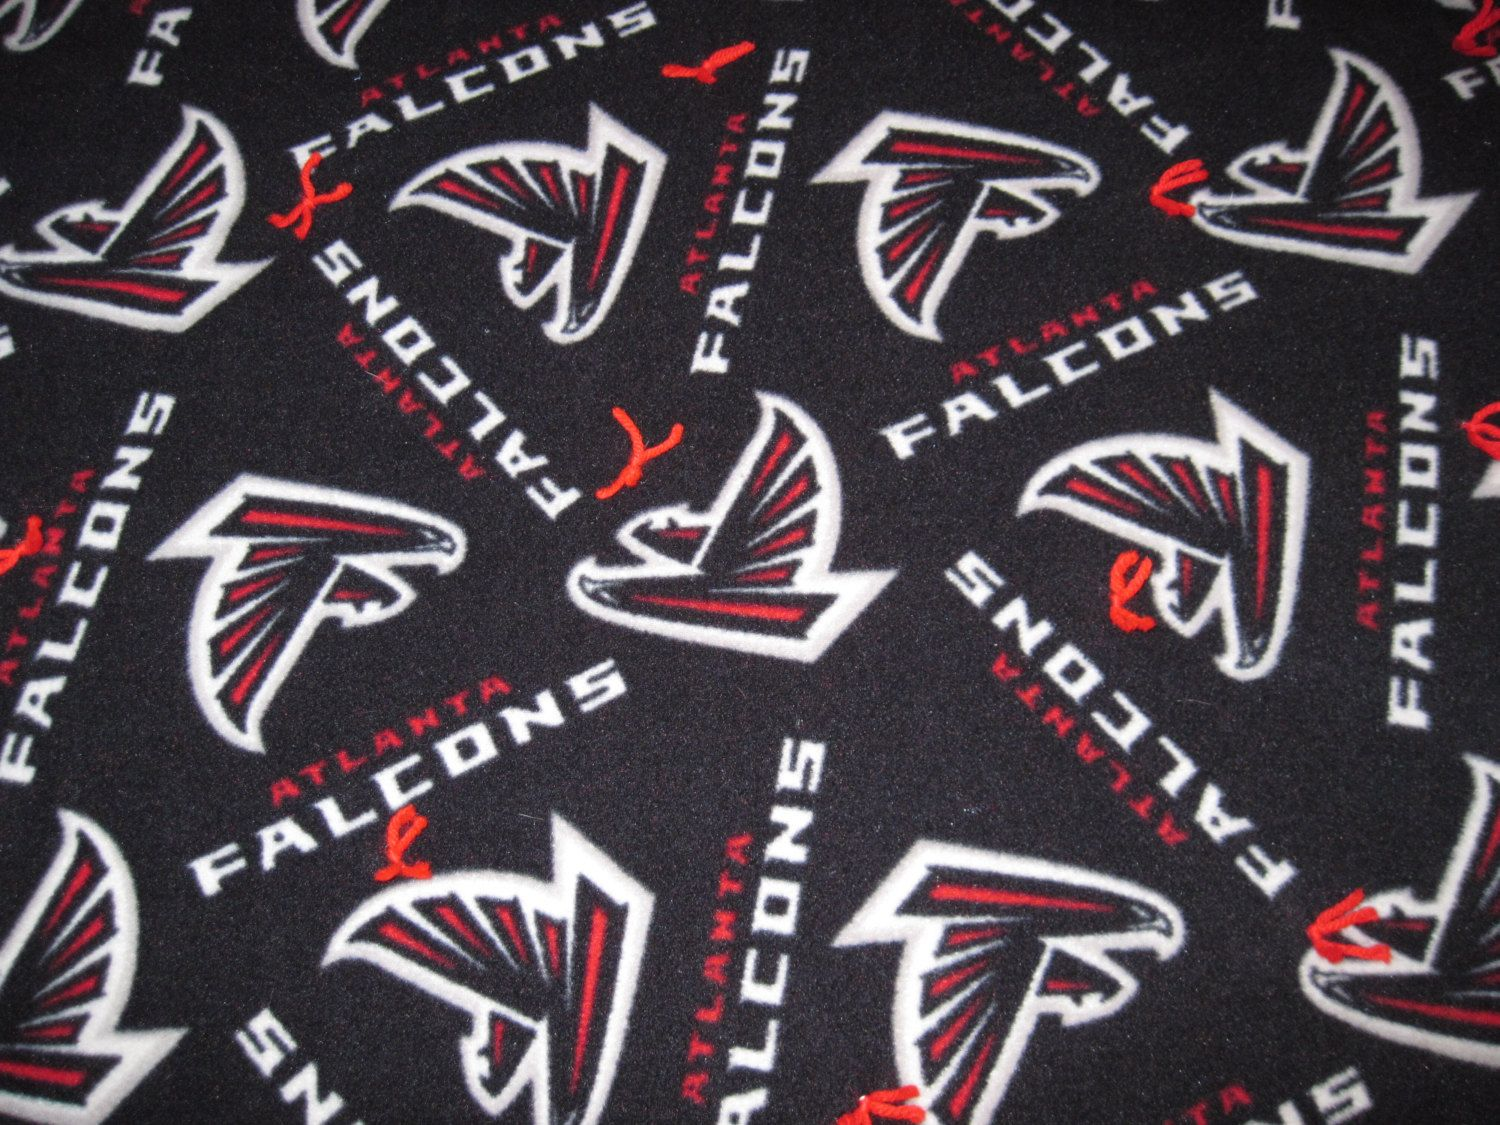 Atlanta Falcons blanket with red backing by JandJblankiesandETC on Etsy